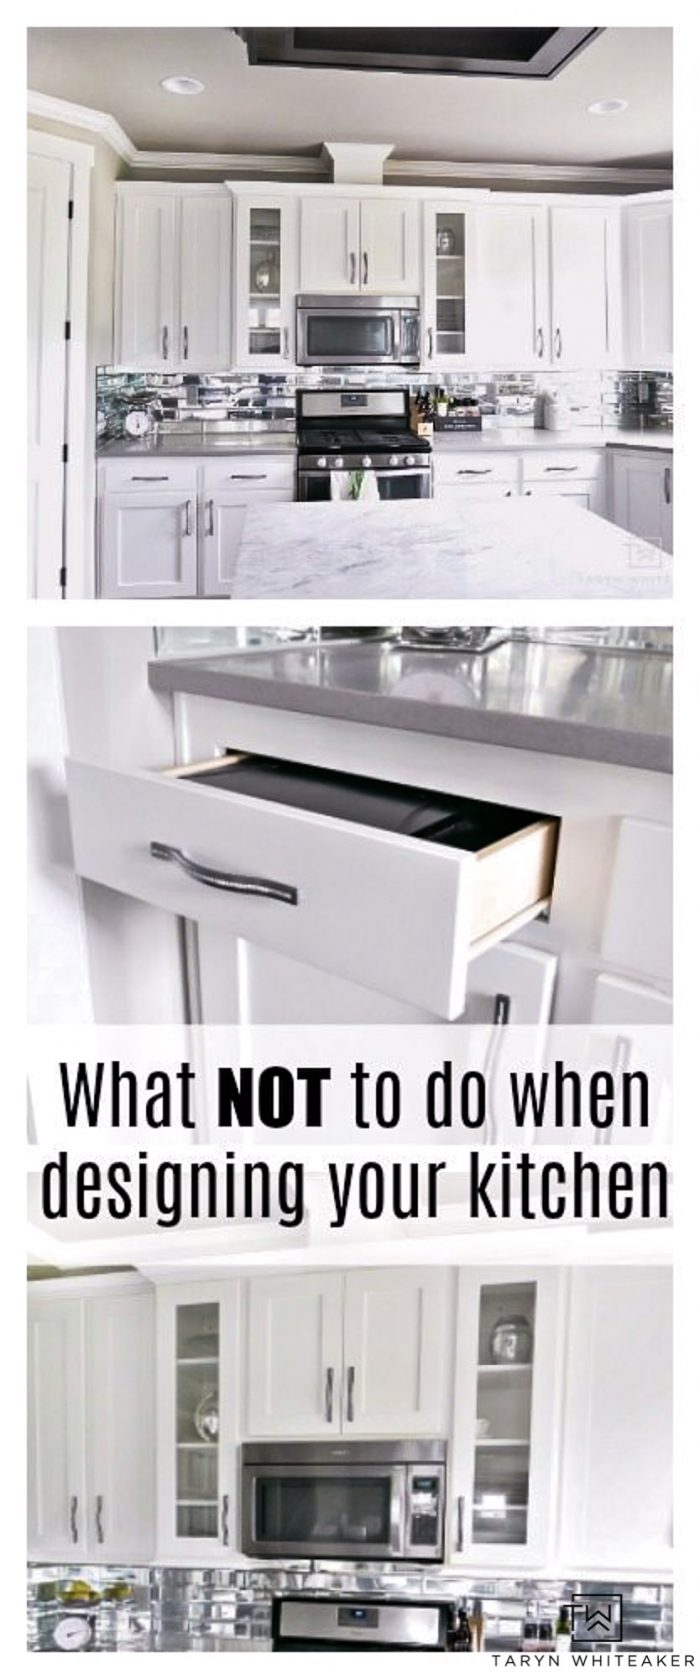 What NOT To Do When Designing Your Kitchen - Before you dive into your kitchen remodel read these tips from a regular homeowner who uses their kitchen a ton!